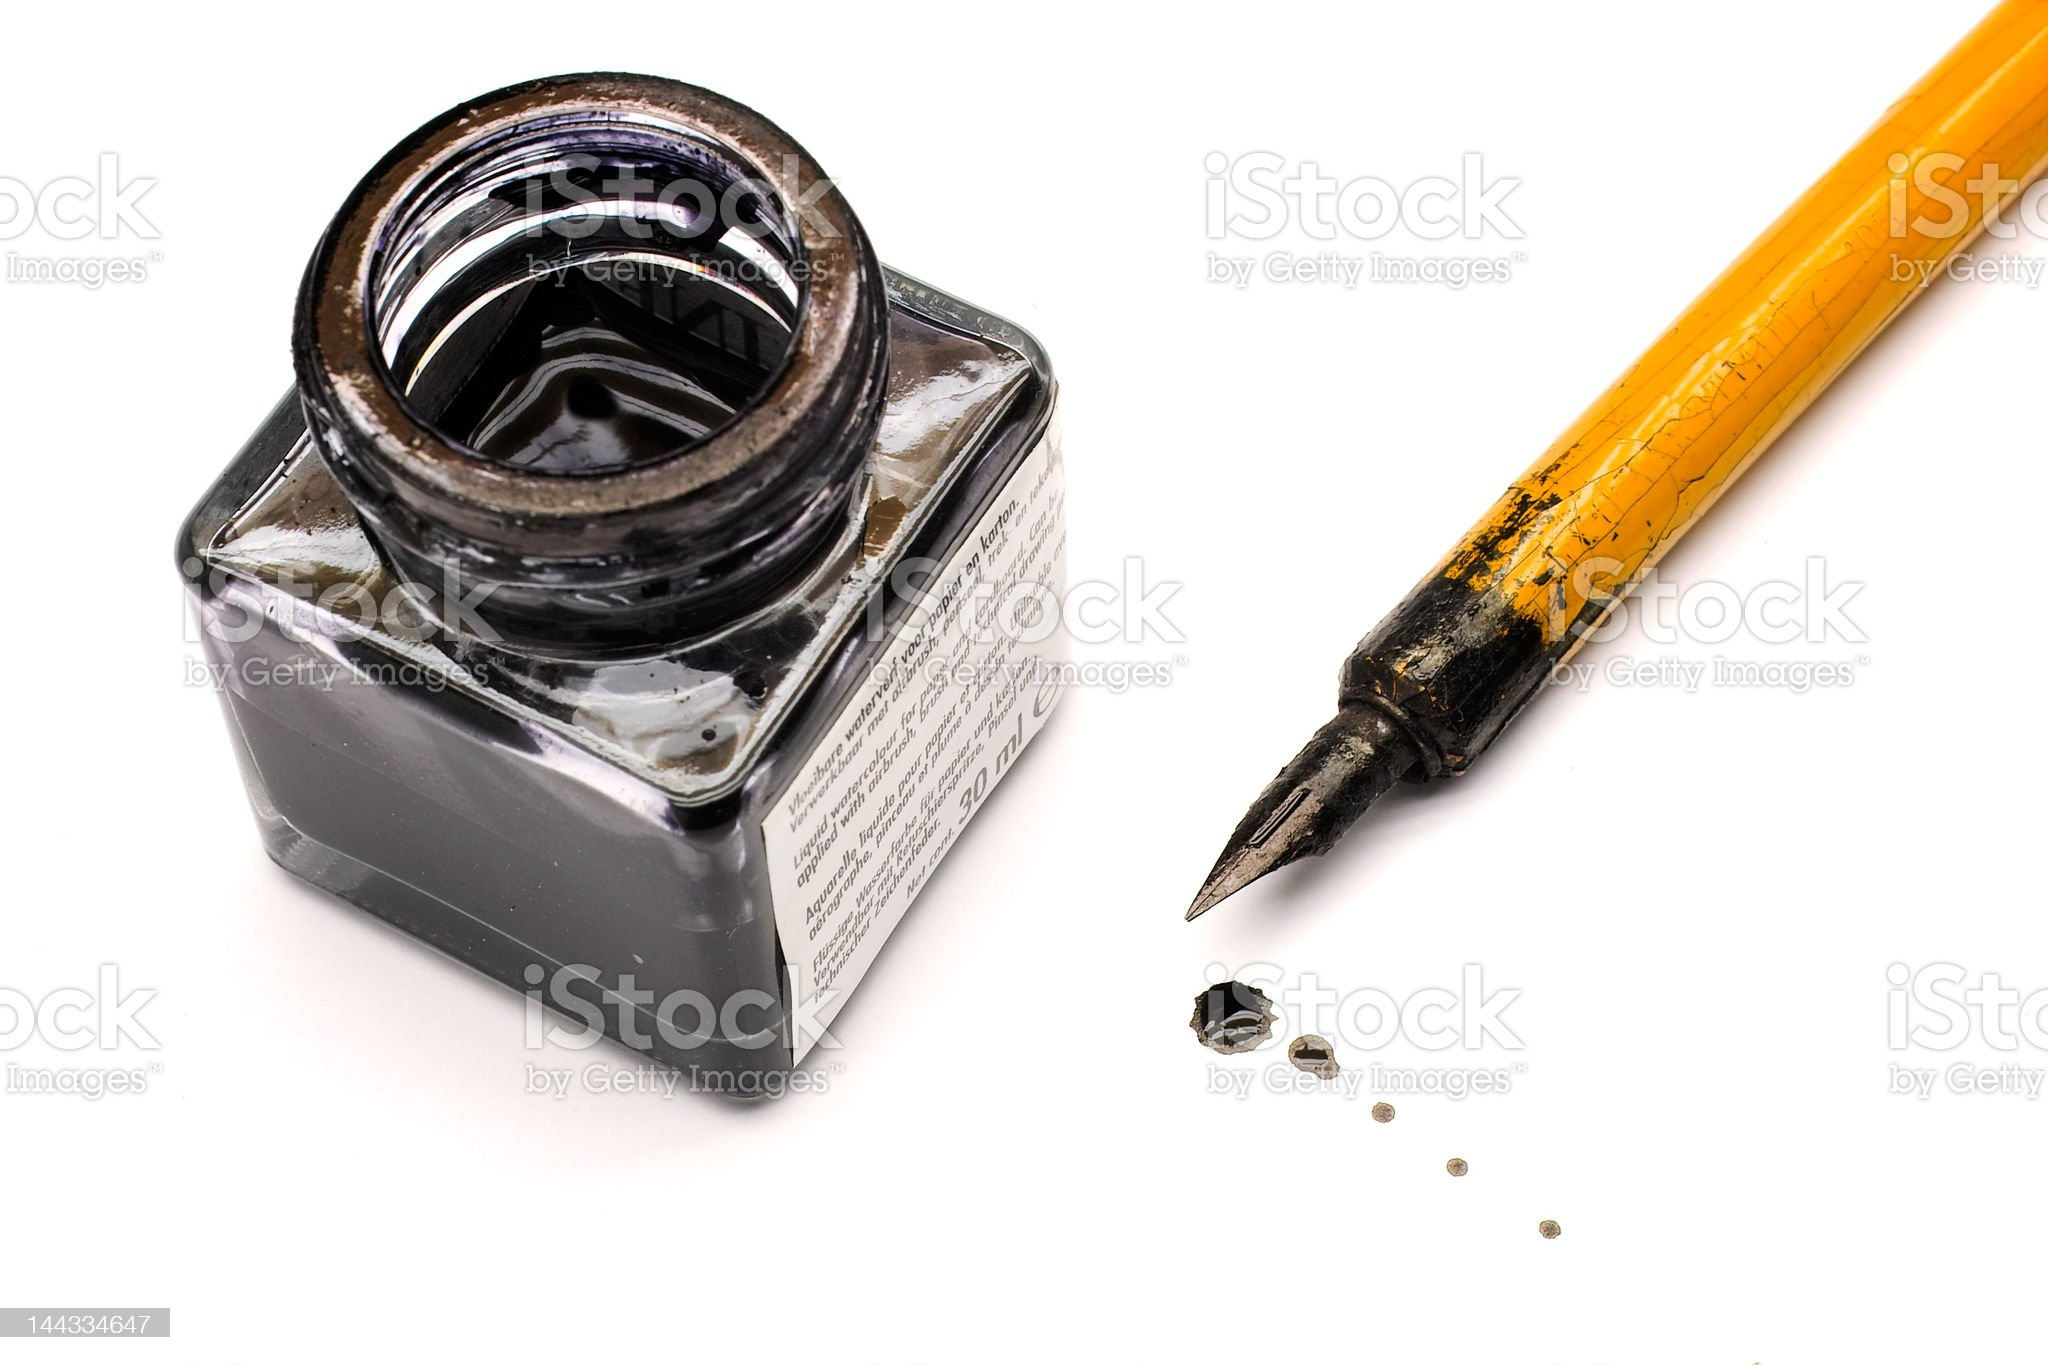 Ink bottle and nib pen royalty-free stock photo